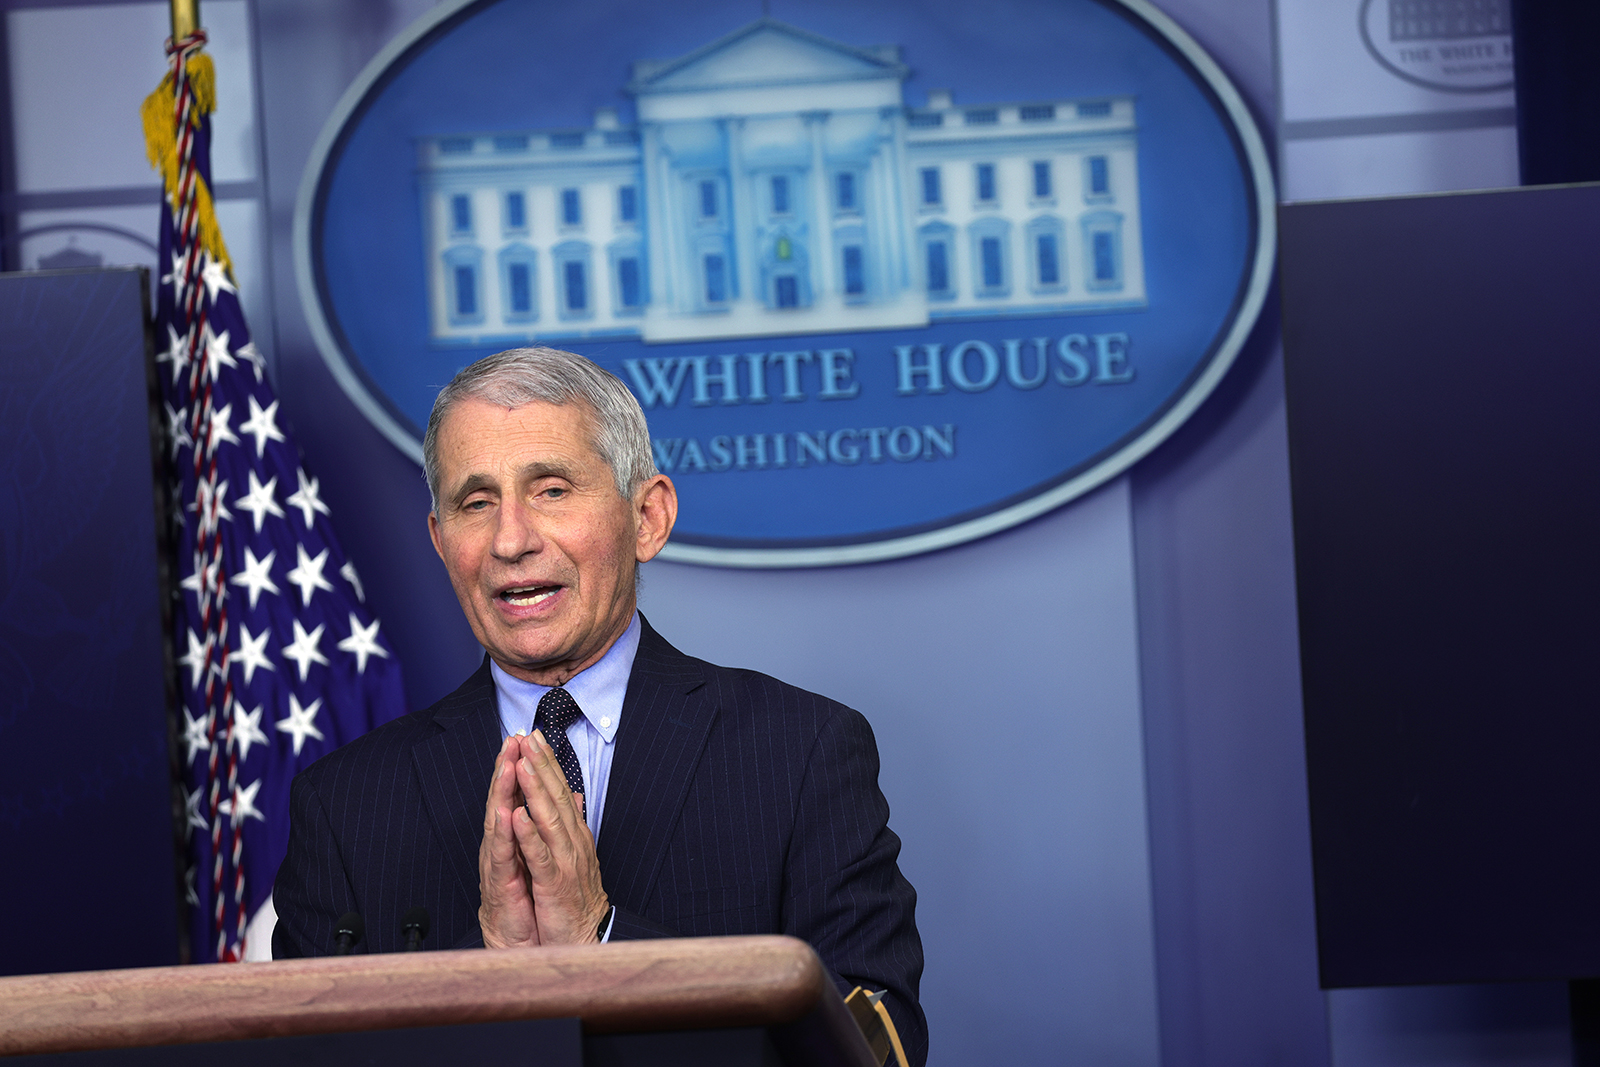 Dr Anthony Fauci, director of the National Institute of Allergy and Infectious Diseases, speaks during a White House news briefing in Washington, DC, on January 21.